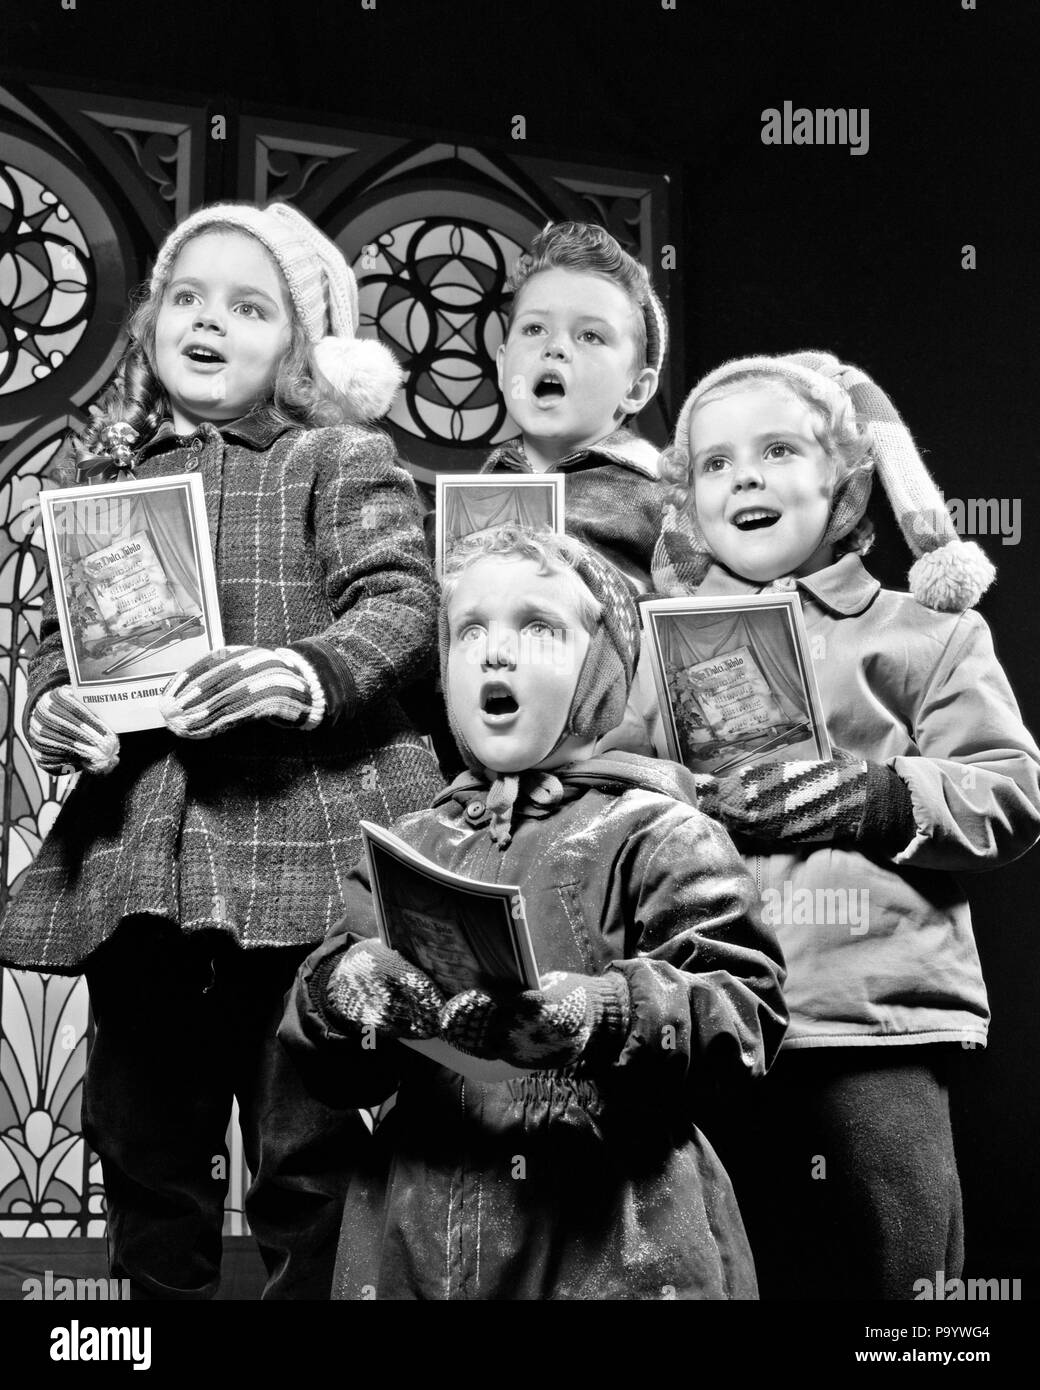 1950s TWO GIRLS TWO BOYS SINGING CHRISTMAS CAROLS - x191 HAR001 HARS HOME LIFE FRIENDSHIP HALF-LENGTH INSPIRATION CARING MALES ENTERTAINMENT SIBLINGS SPIRITUALITY CONFIDENCE SISTERS B&W CAROLS HAPPINESS EXCITEMENT RECREATION PRIDE SIBLING CAROLING STYLISH CREATIVITY GROWTH JUVENILES TOGETHERNESS BLACK AND WHITE CAUCASIAN ETHNICITY HAR001 OLD FASHIONED - Stock Image